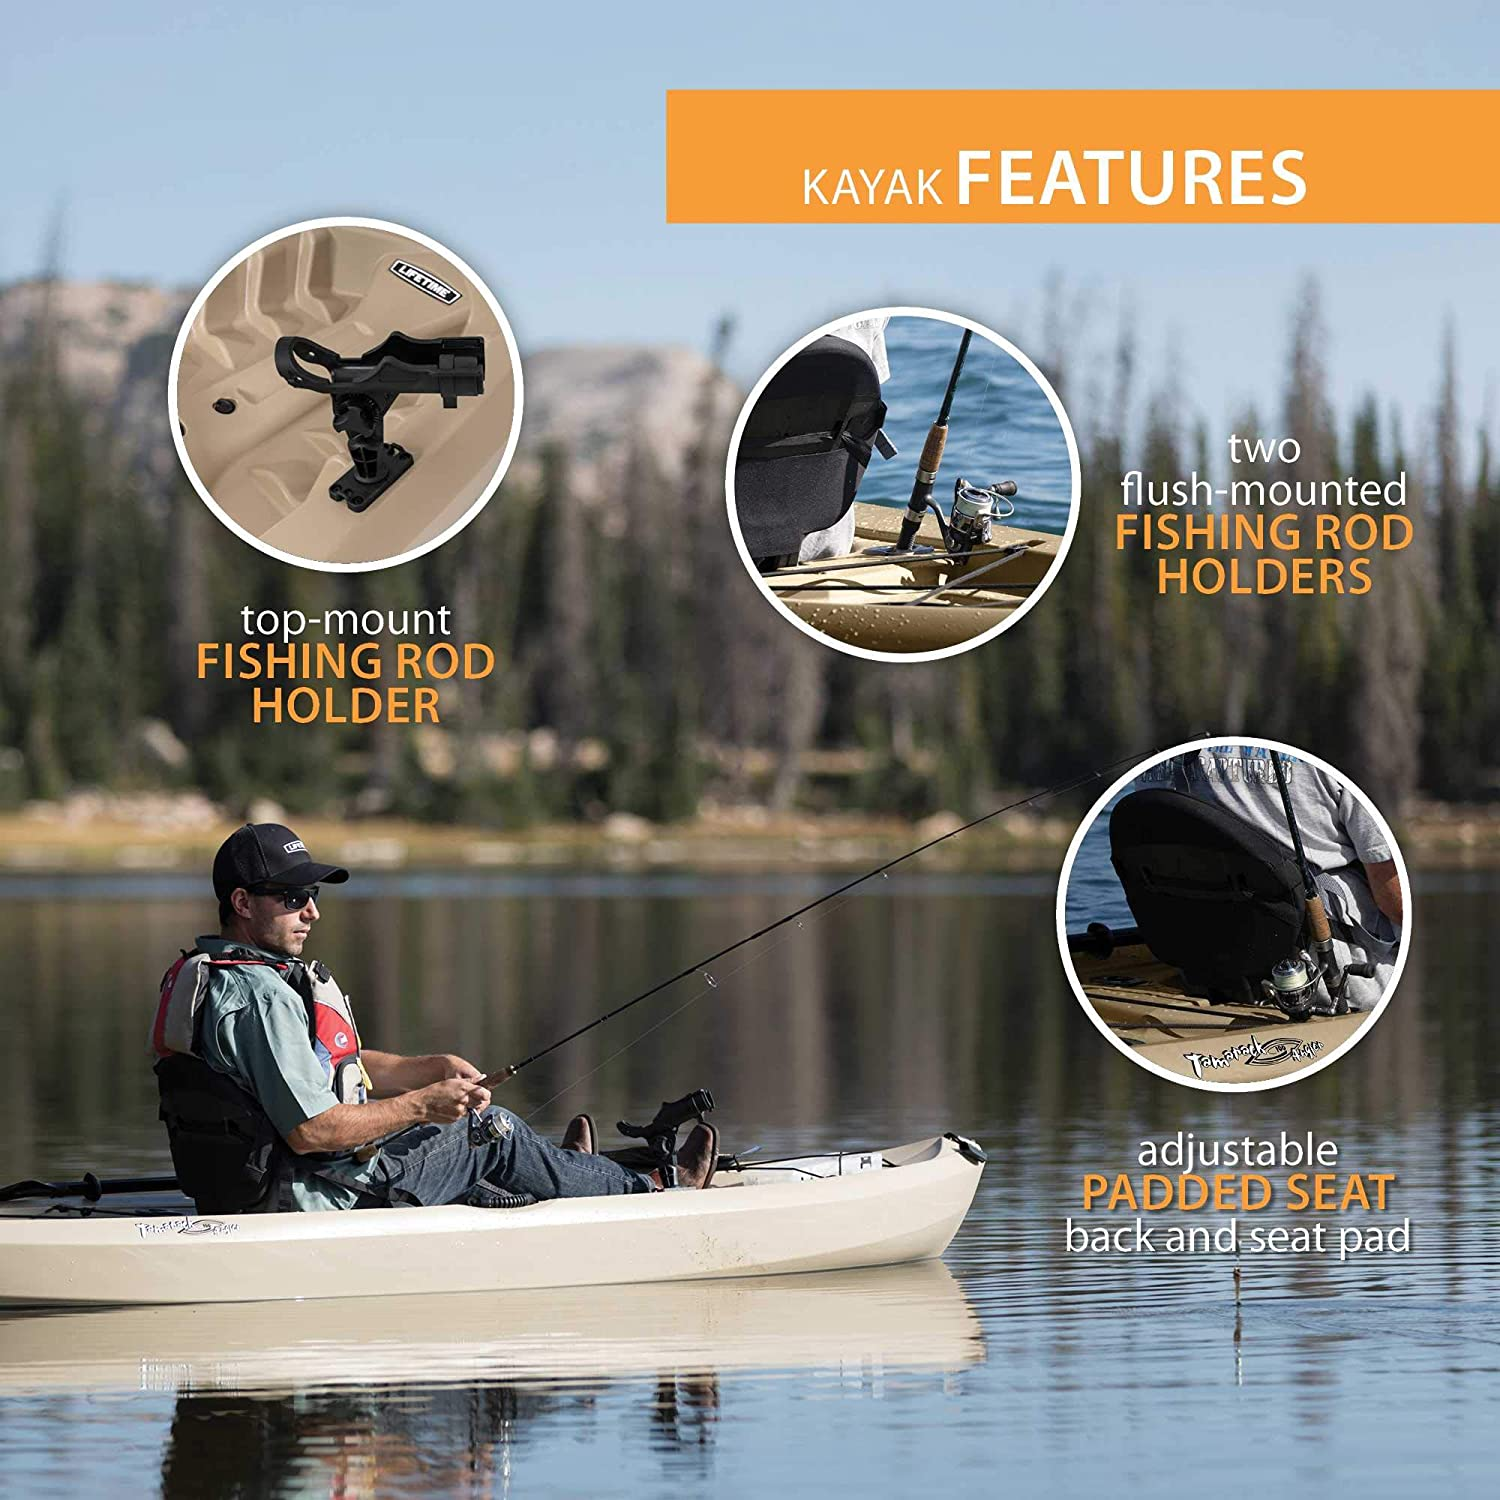 whats the most stable fishing kayak